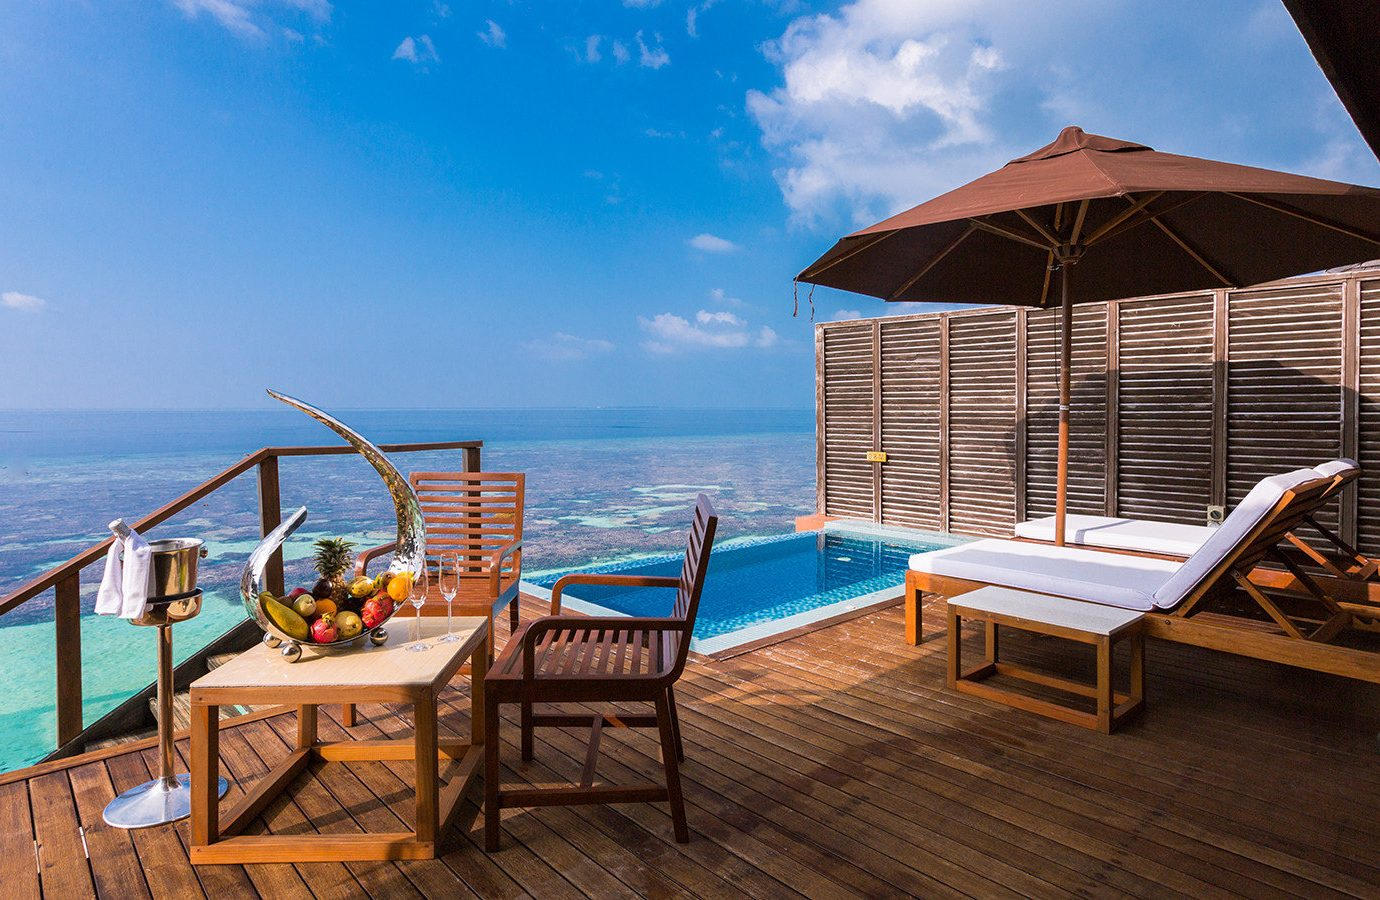 All-Inclusive Resorts Hotels sky floor Sea swimming pool Resort property chair vacation leisure real estate wooden sunlounger estate water Ocean outdoor furniture Villa resort town tourism tropics house hotel penthouse apartment outdoor structure caribbean condominium amenity Deck furniture several